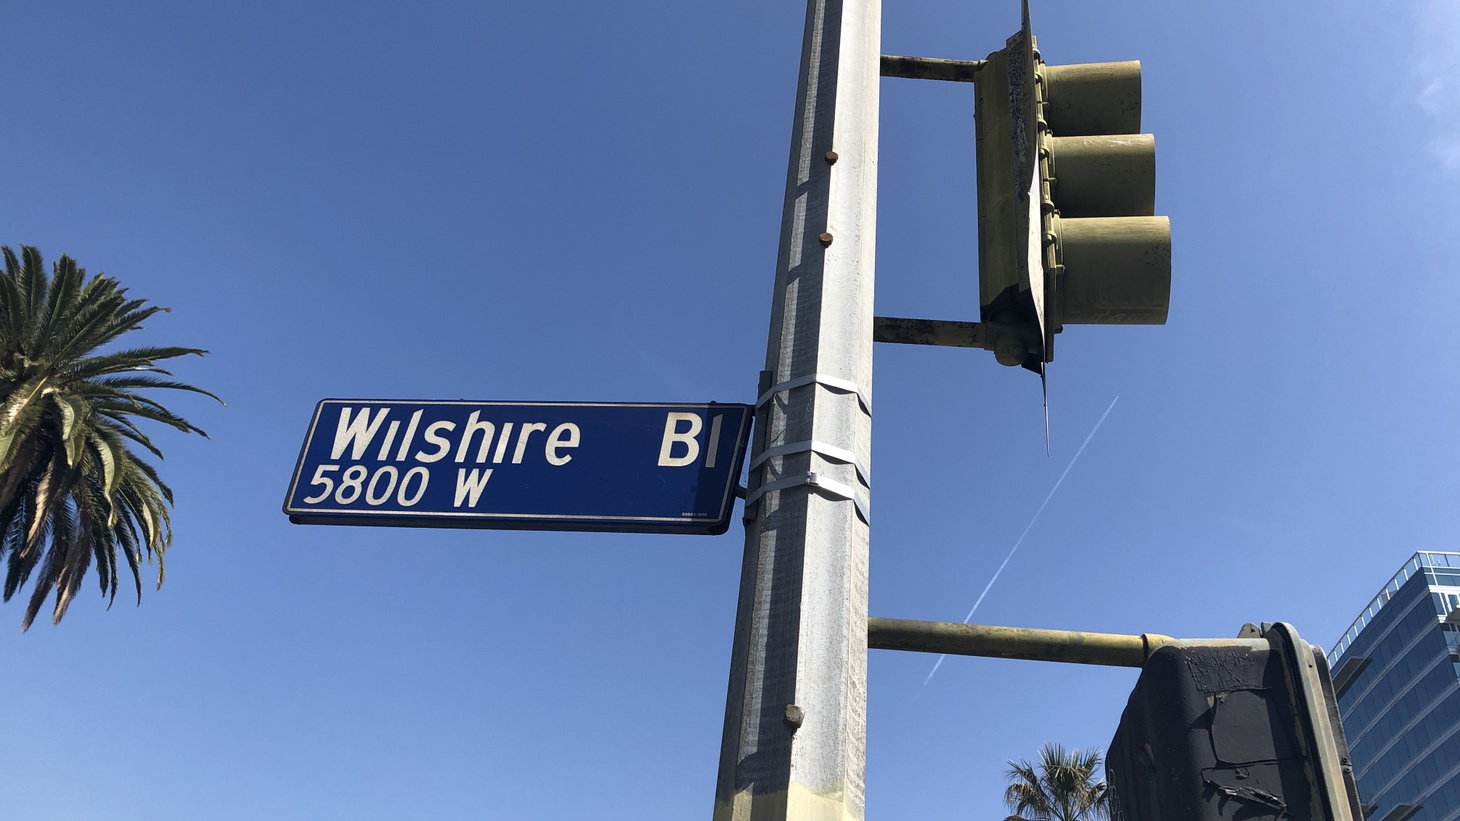 """Wilshire Blvd. is arguably the most important boulevard in Los Angeles today, says Kevin Roderick, author of """"Wilshire Blvd: Grand Concourse of Los Angeles."""""""